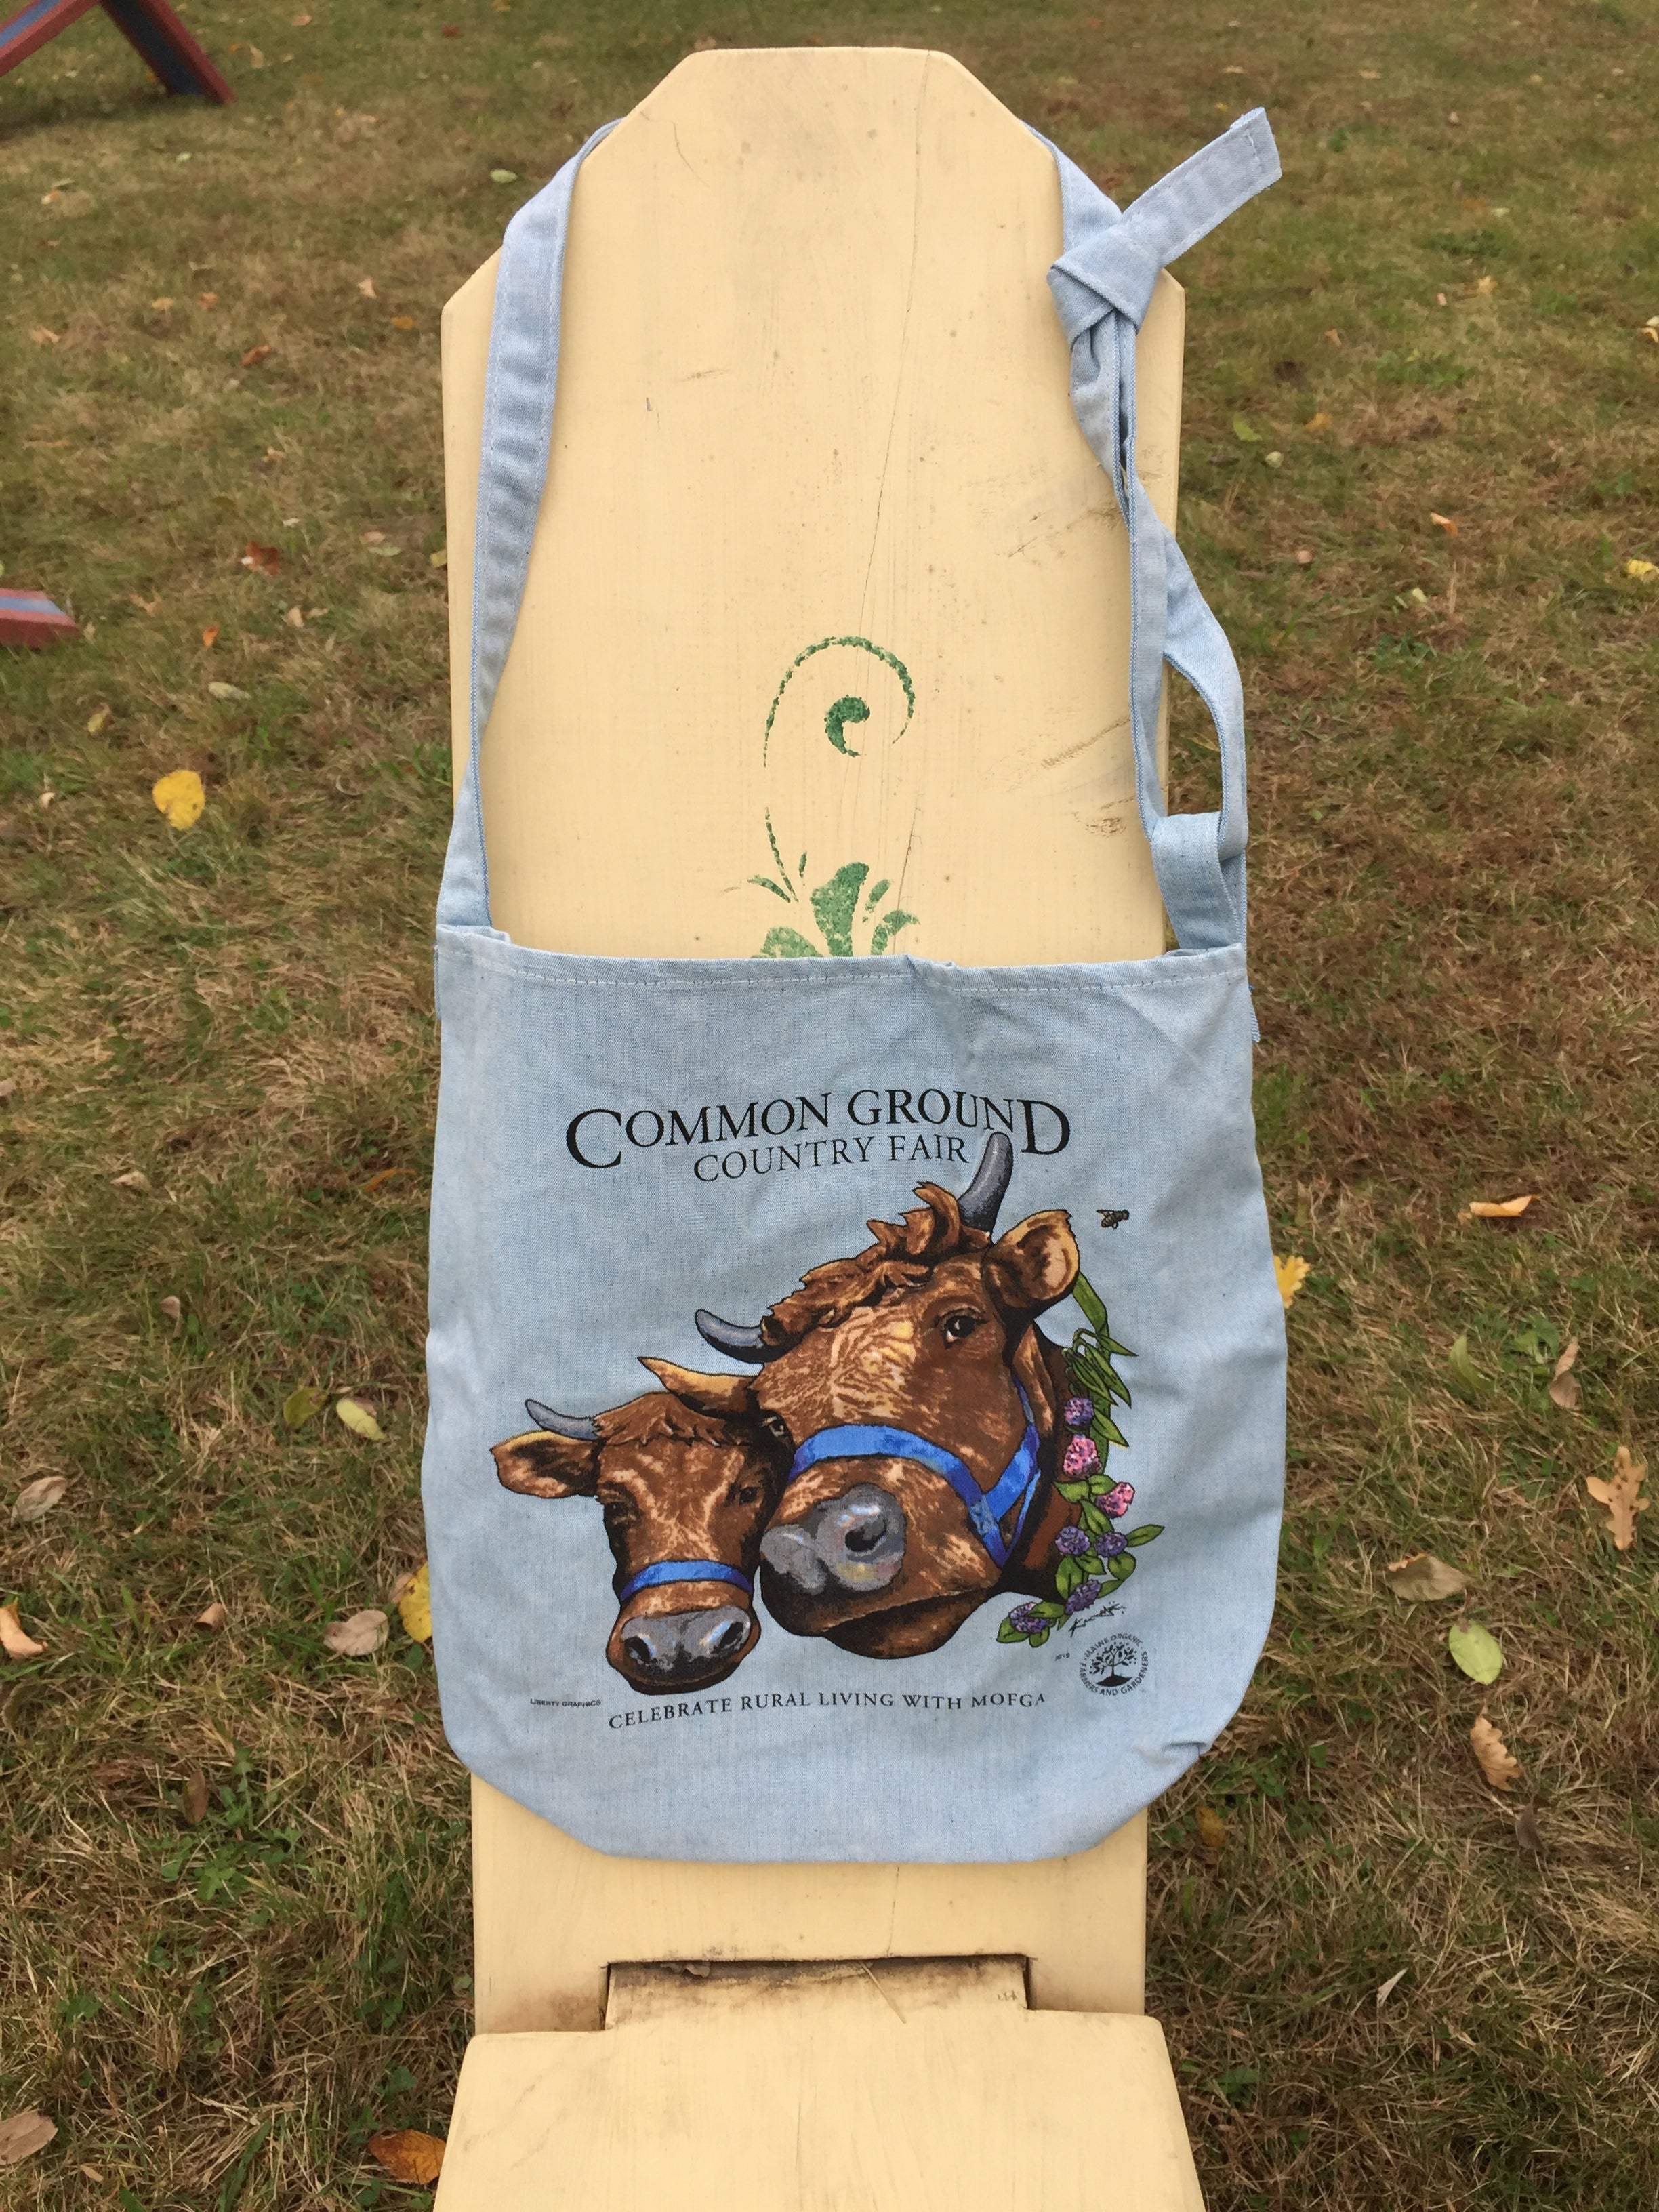 2019 Common Ground Country Fair - Journey Bag